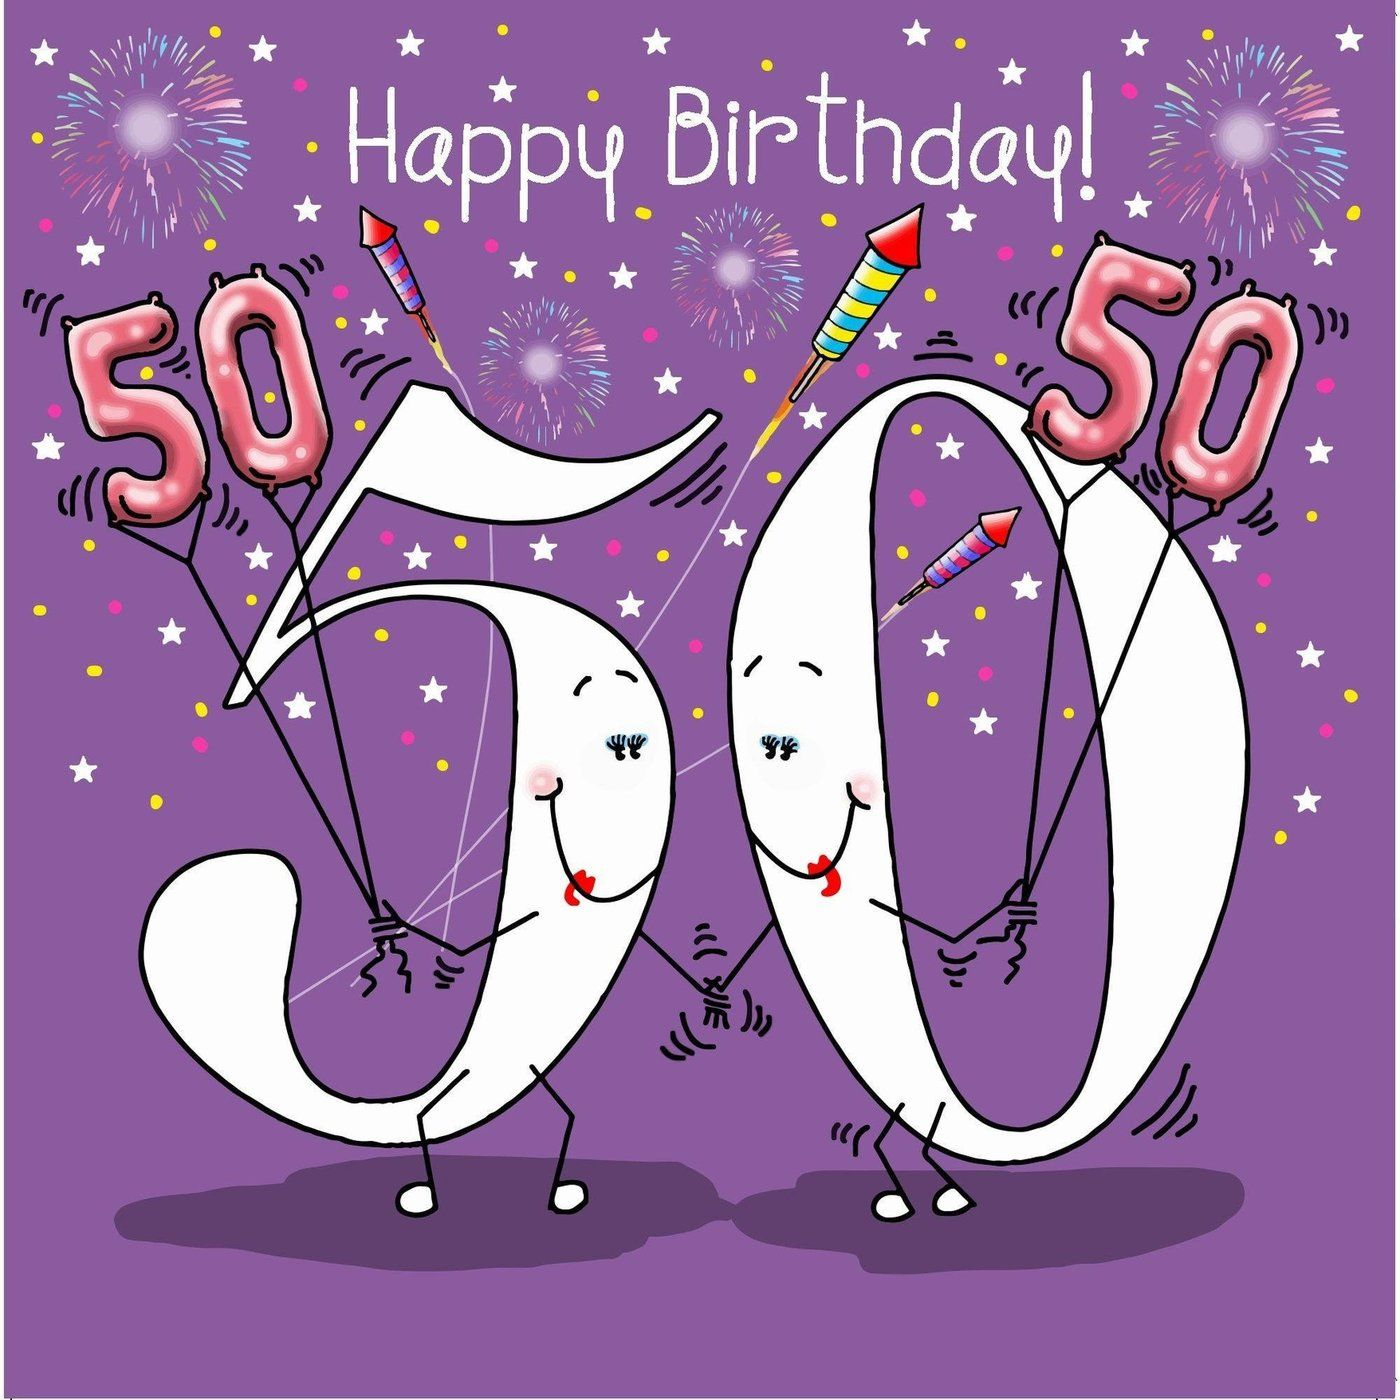 50 reflections on turning 50 50th birthday quotes 50th